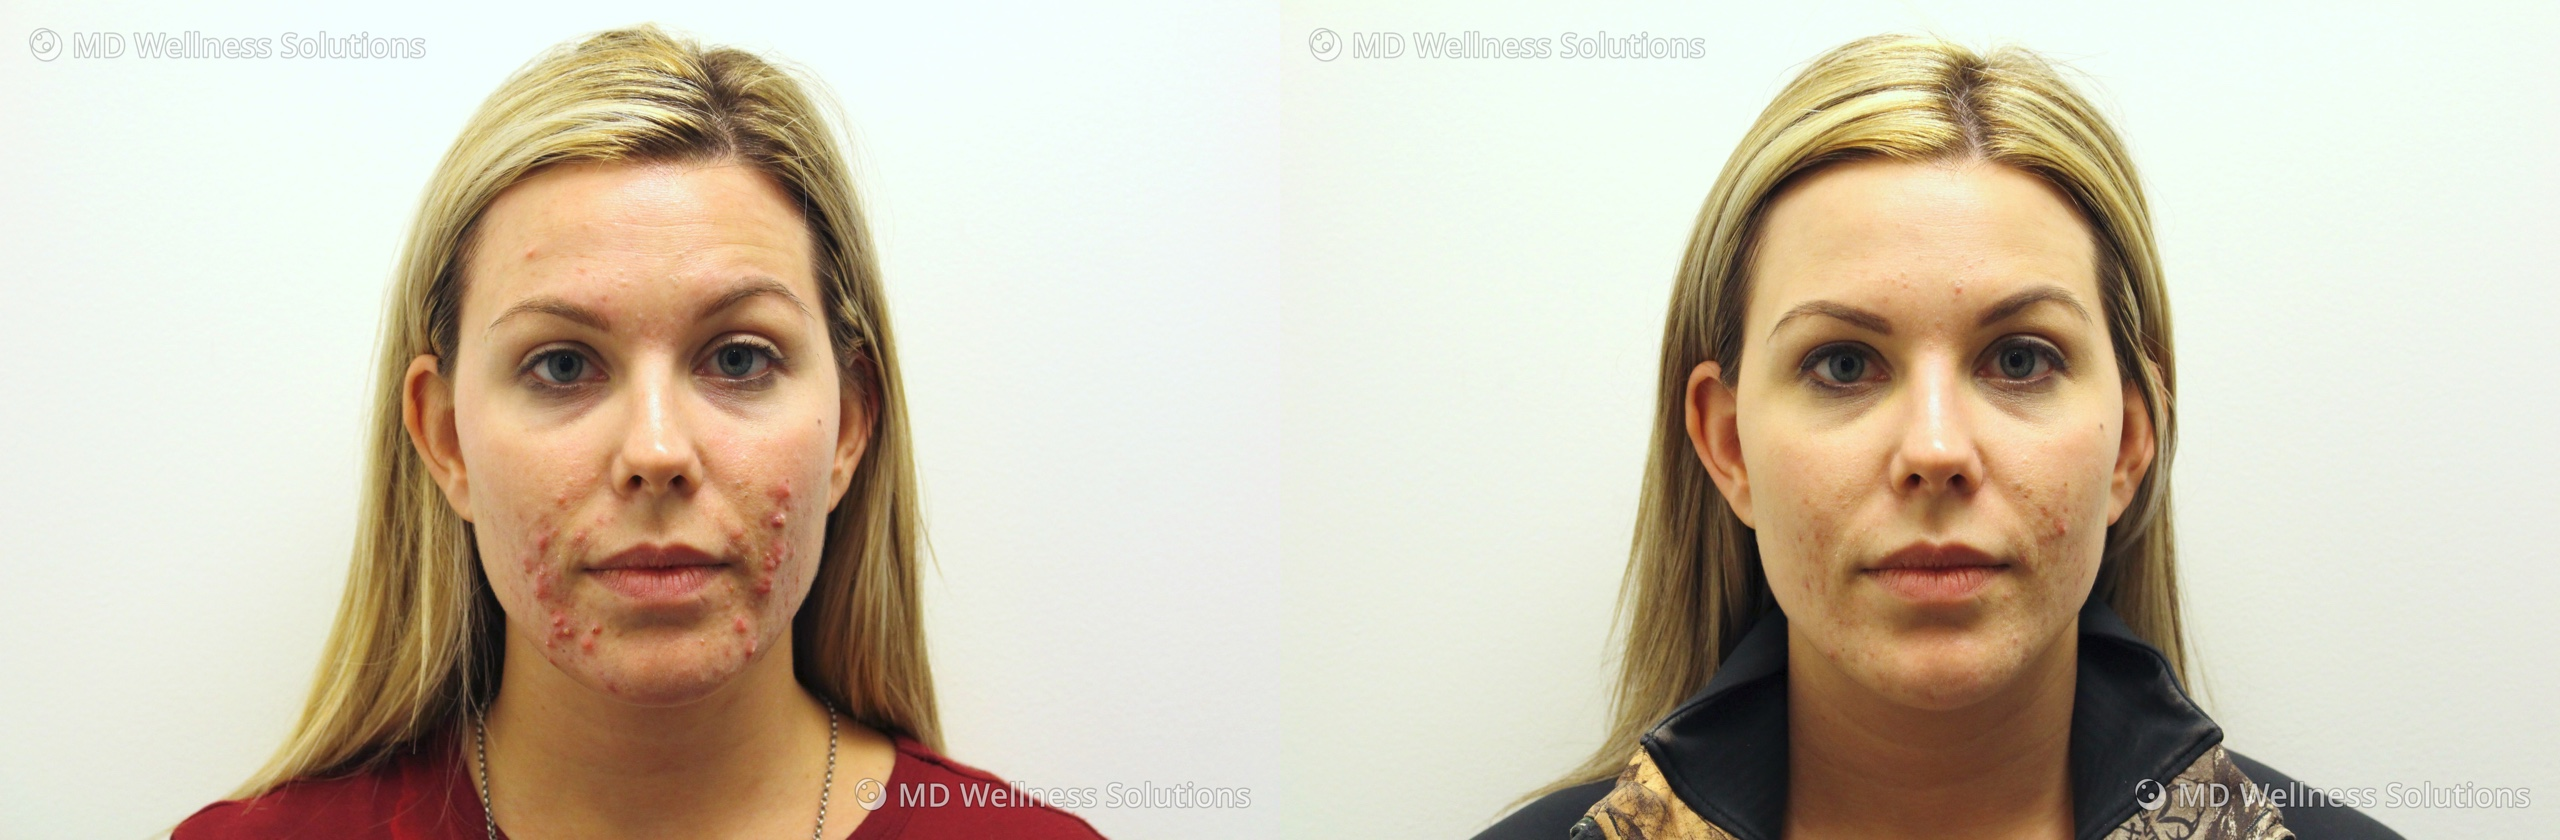 25-34 year old woman before and after acne treatment